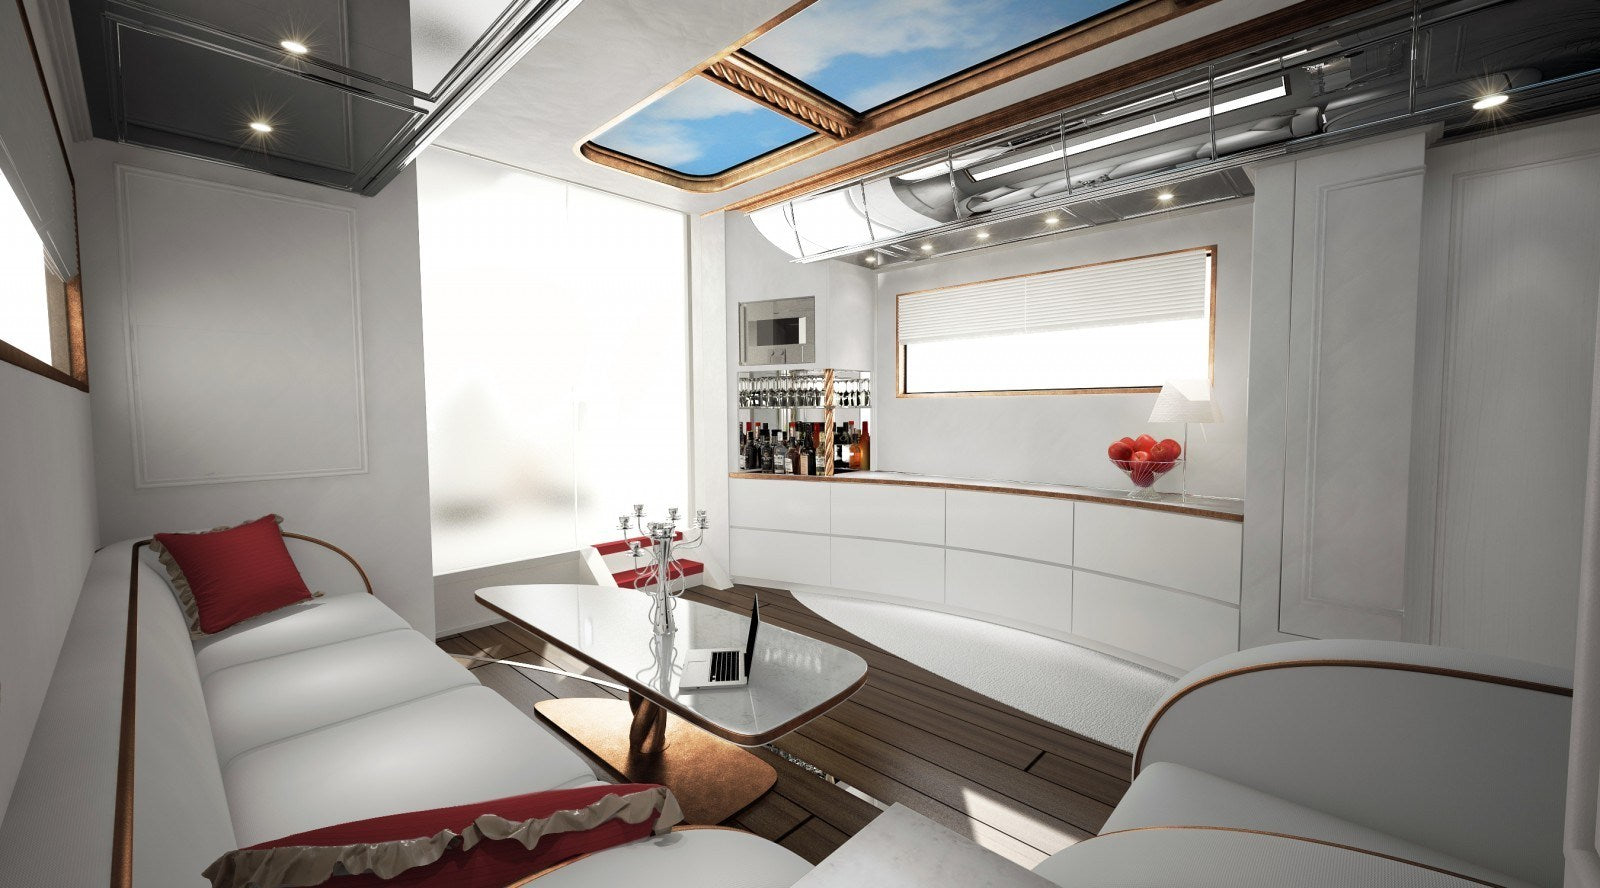 The $3 Million Road-Going Yacht